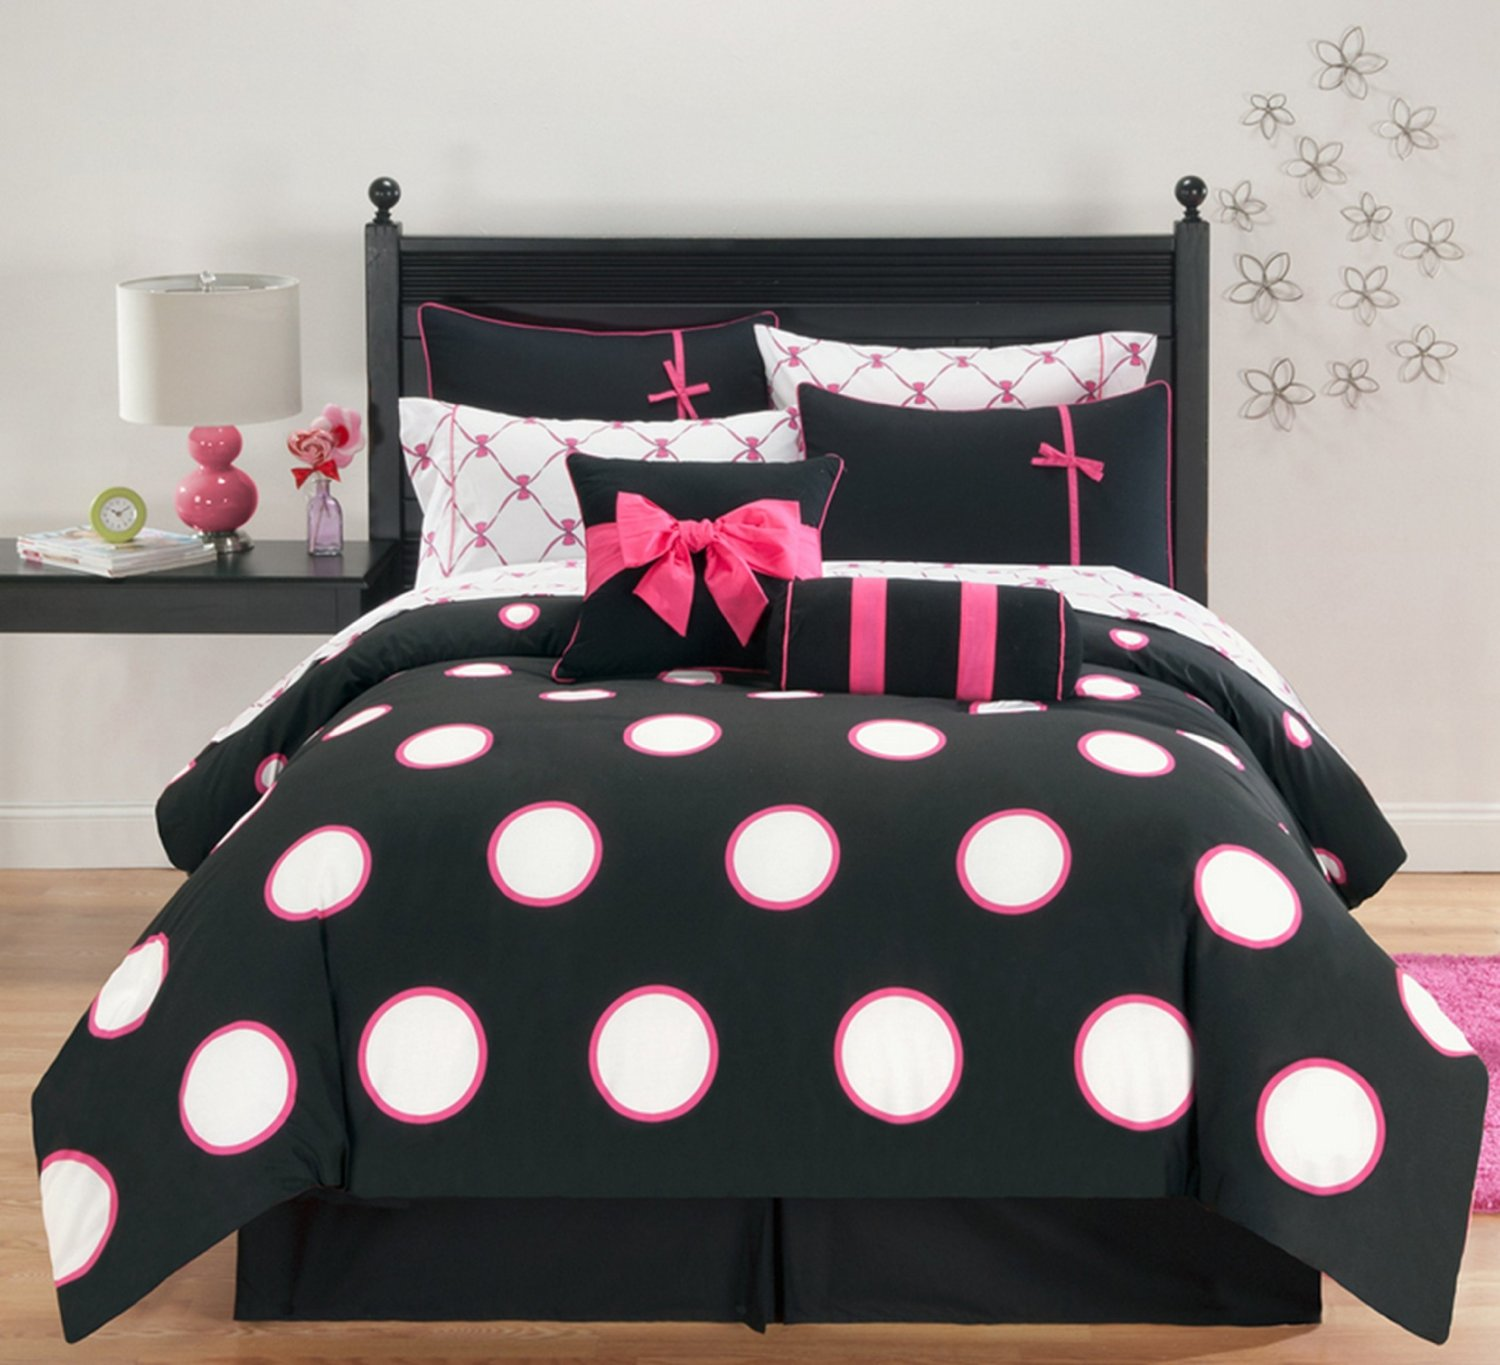 Kmart Bed Sets | Queen Size Bed Sets | Kmart Women's Clothing